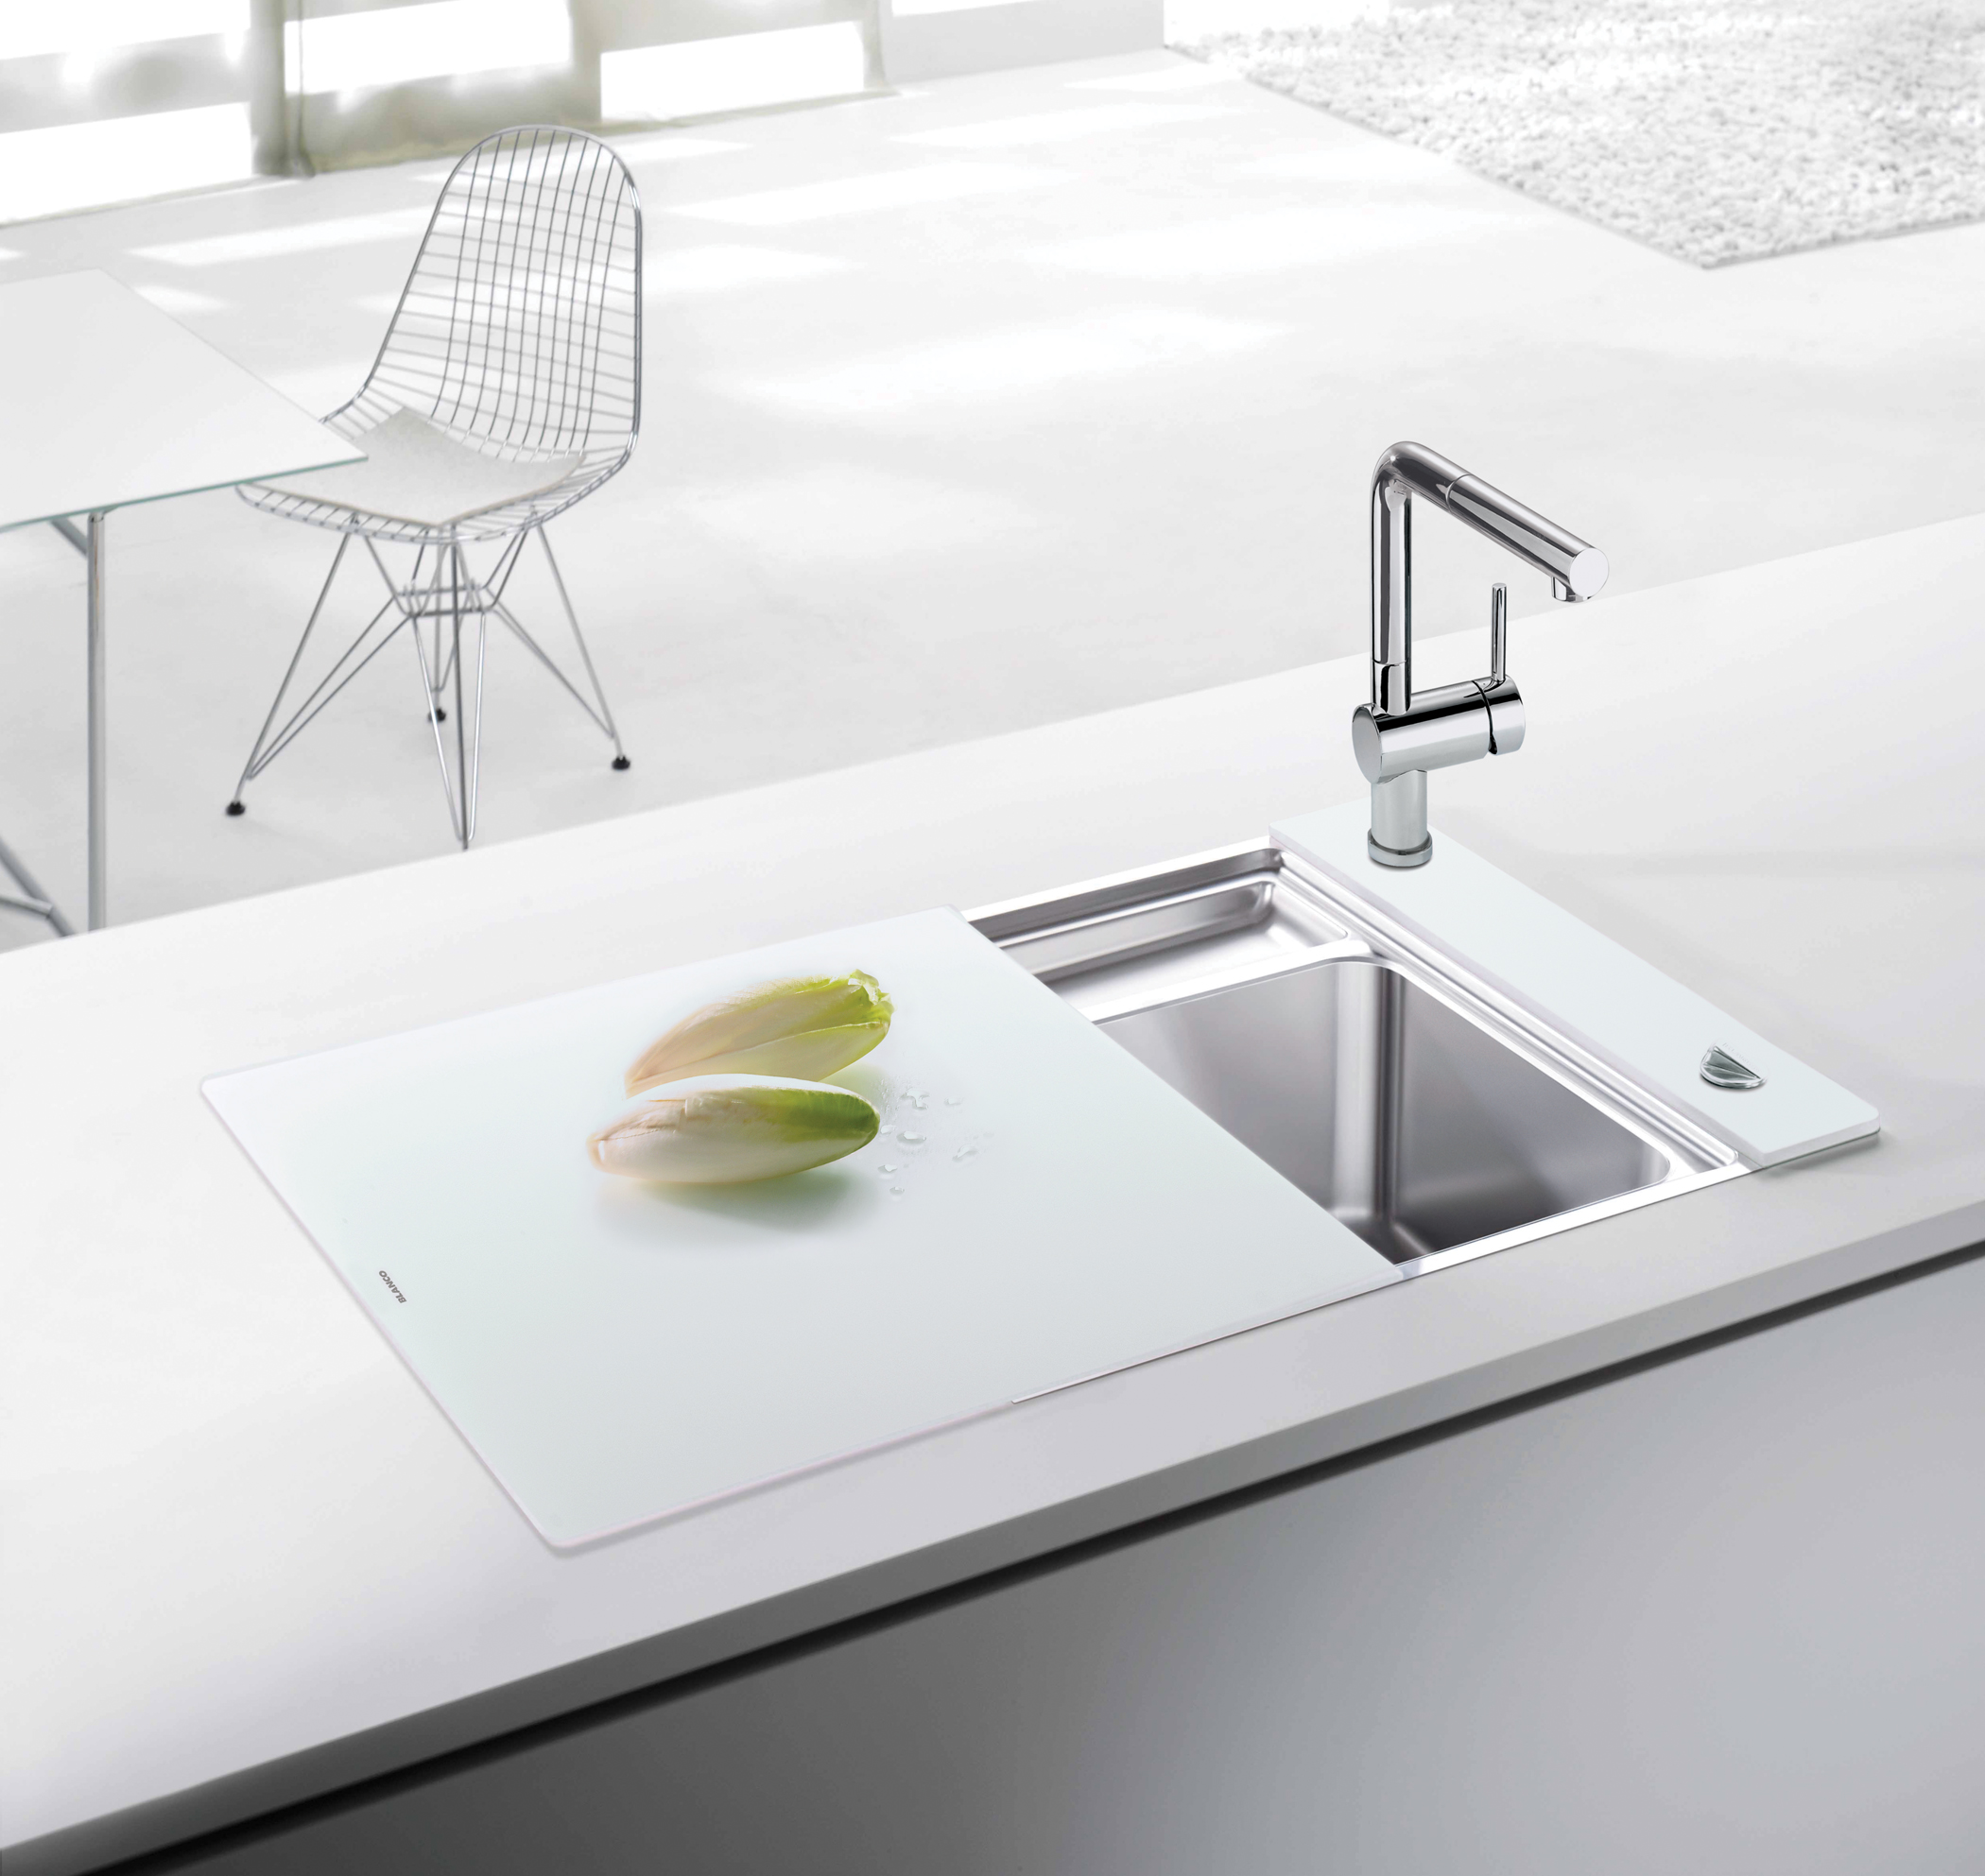 Design of Kitchen Sink | HomesFeed